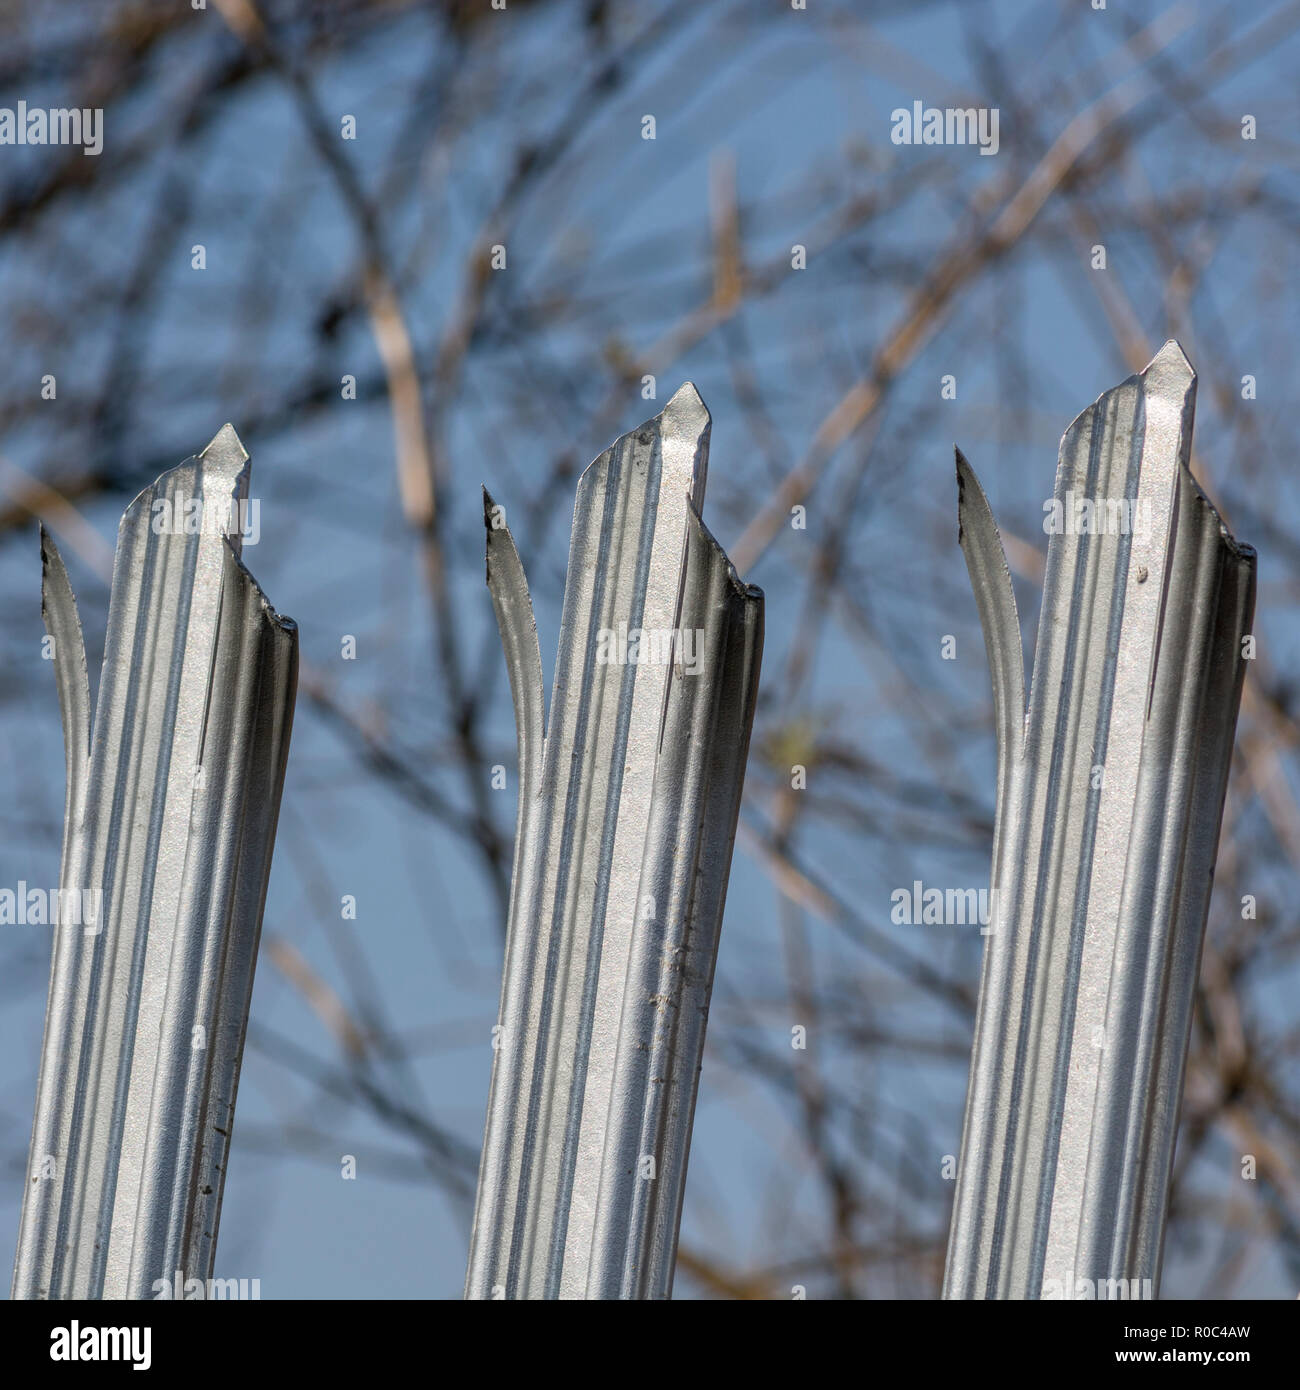 Robust galvanised anti-climb steel fence - metaphor 'Keep Out', concept of barriers and US Mexico border wall, barriers to change, protection security - Stock Image